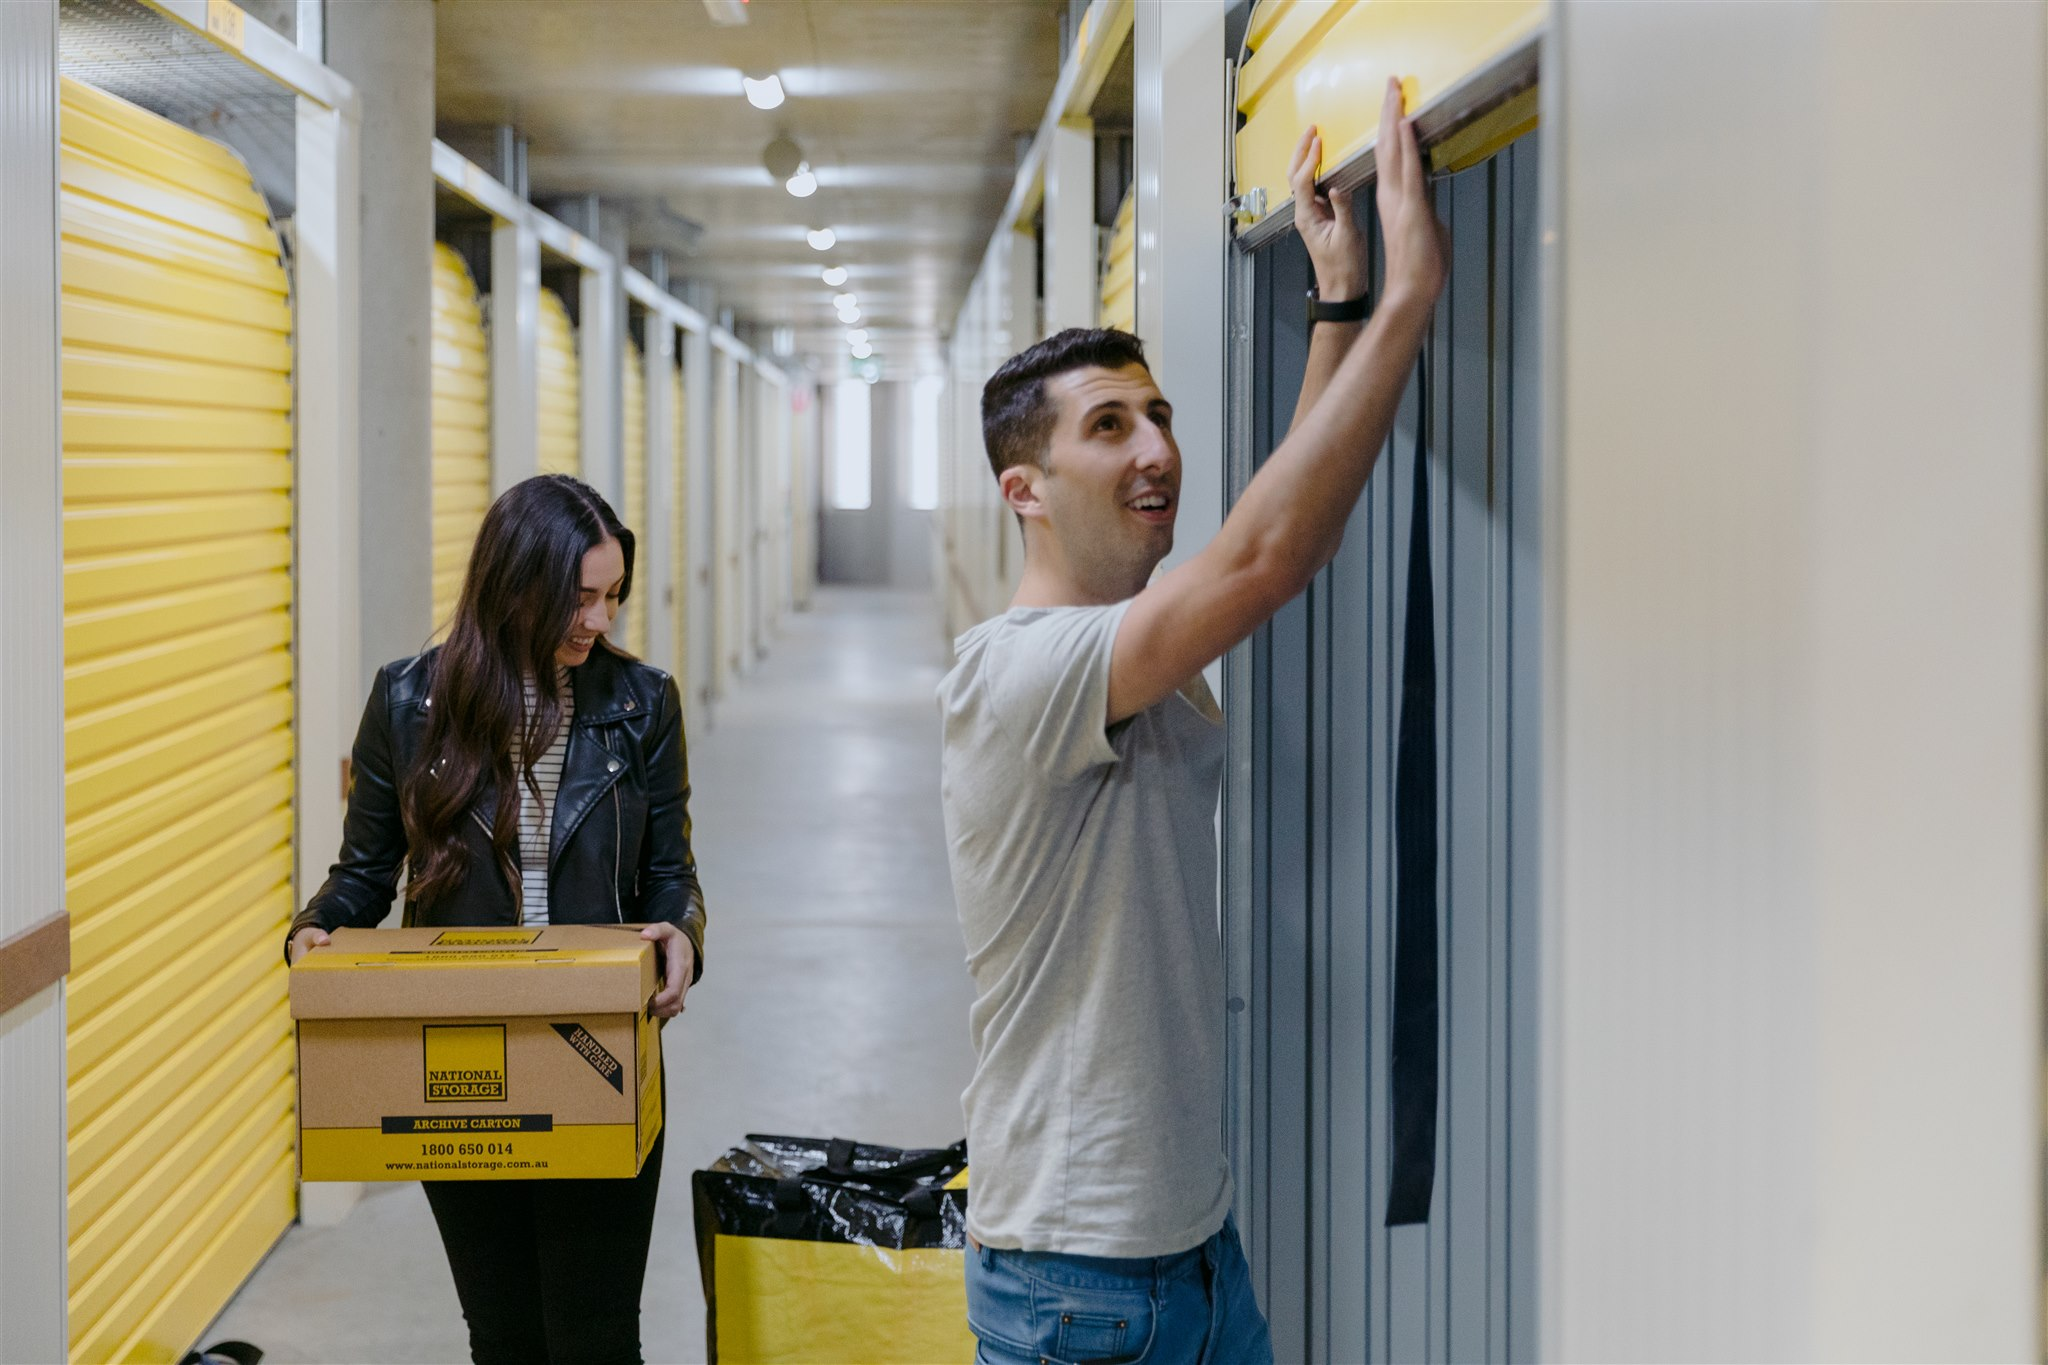 Customers with Storage Unit